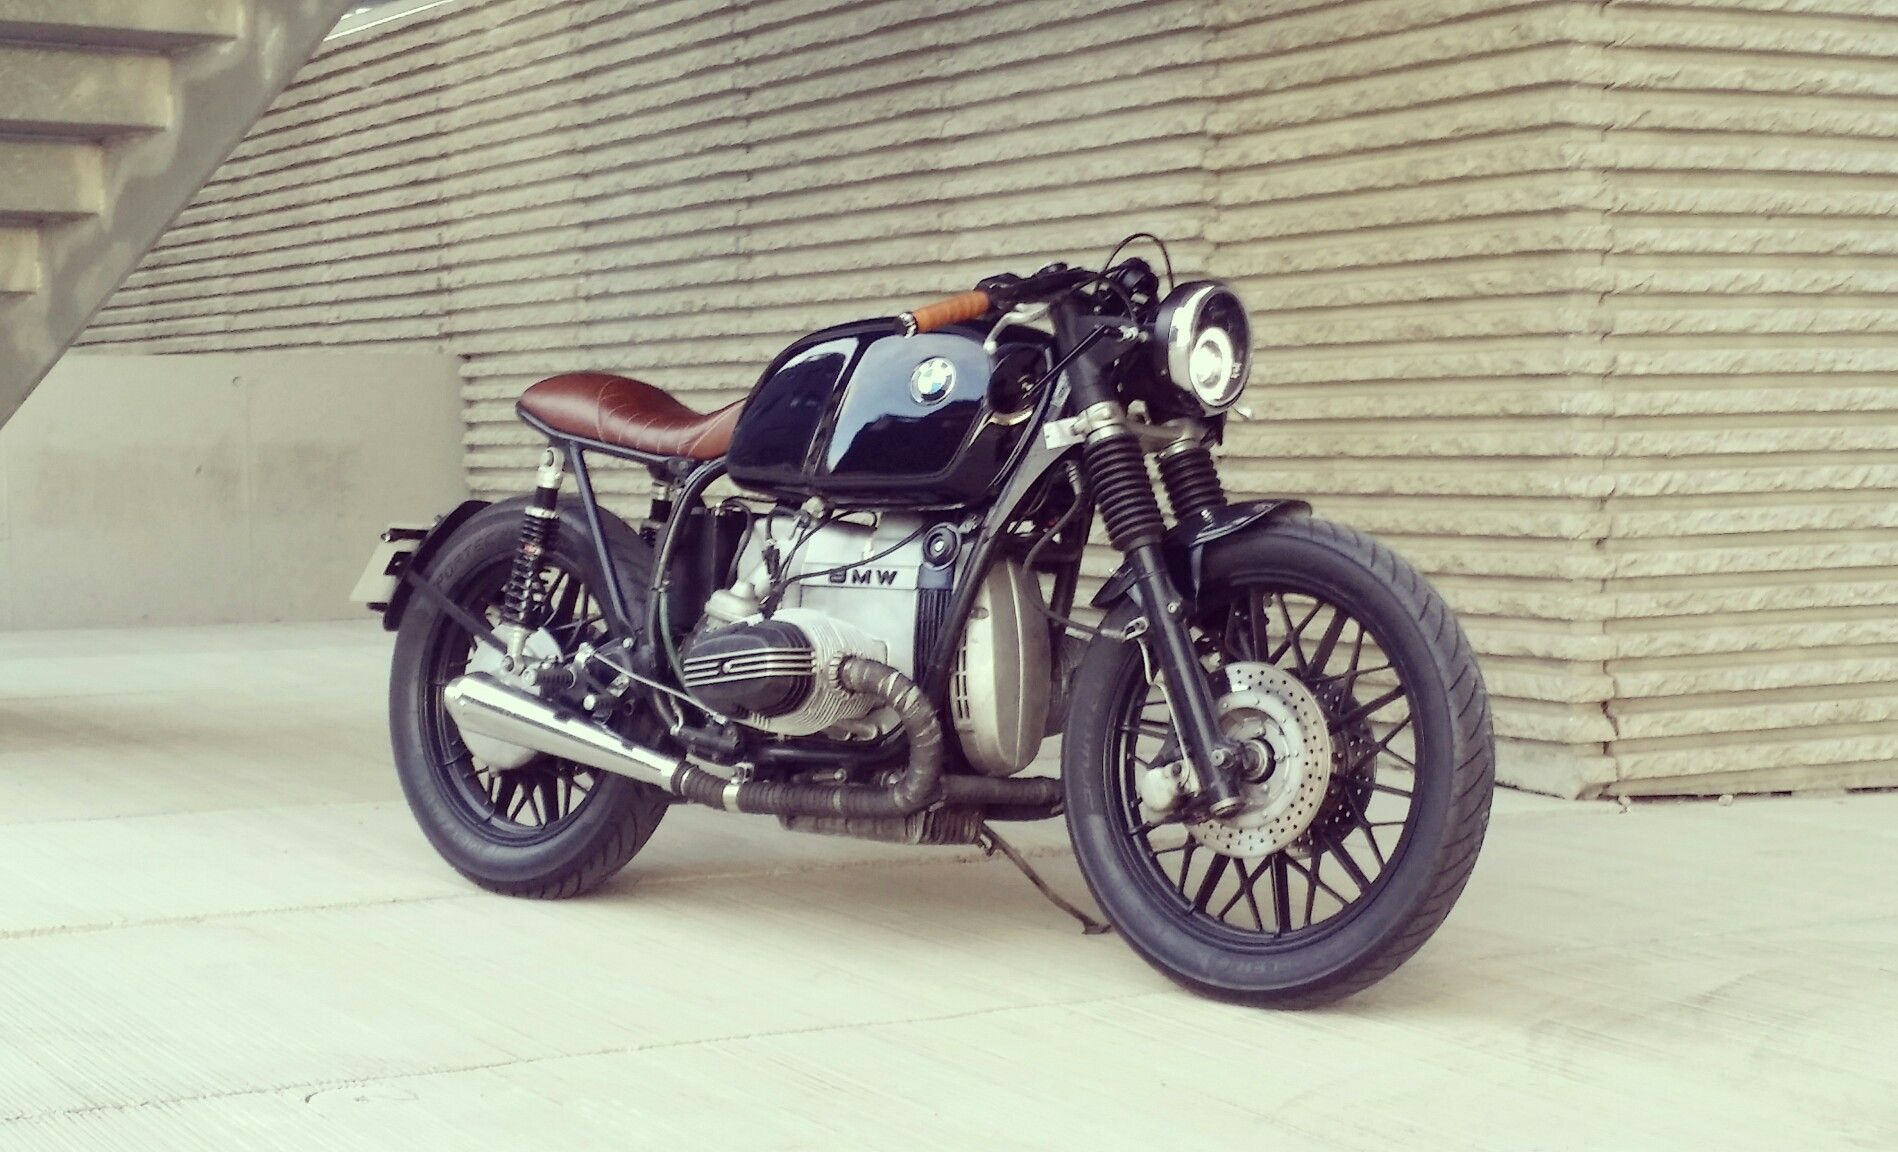 BMW R100RT M. INDUSTRIES motorcycles #9 www.thecityrider.com Cafe Moto,